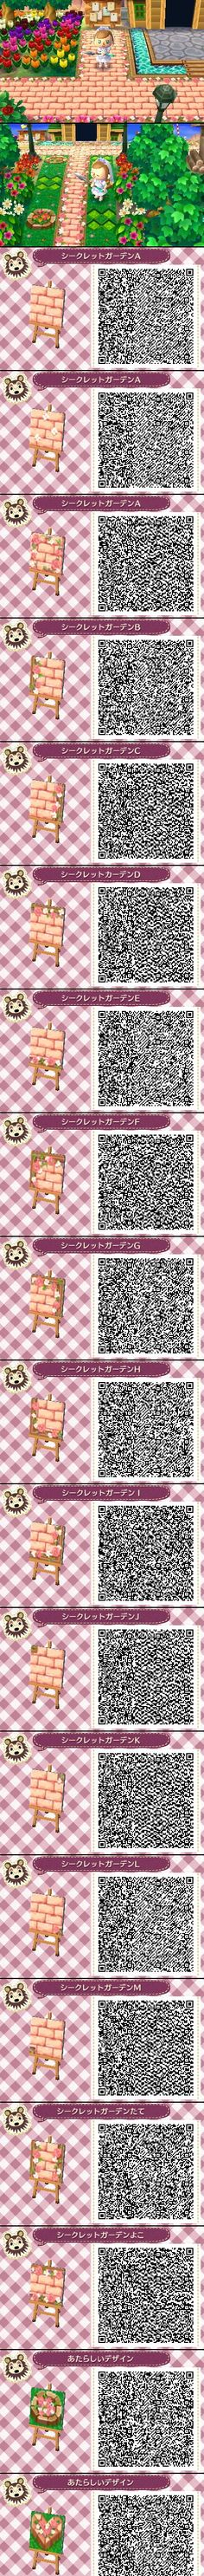 Animal Crossing New Leaf QR codes Pink stone path